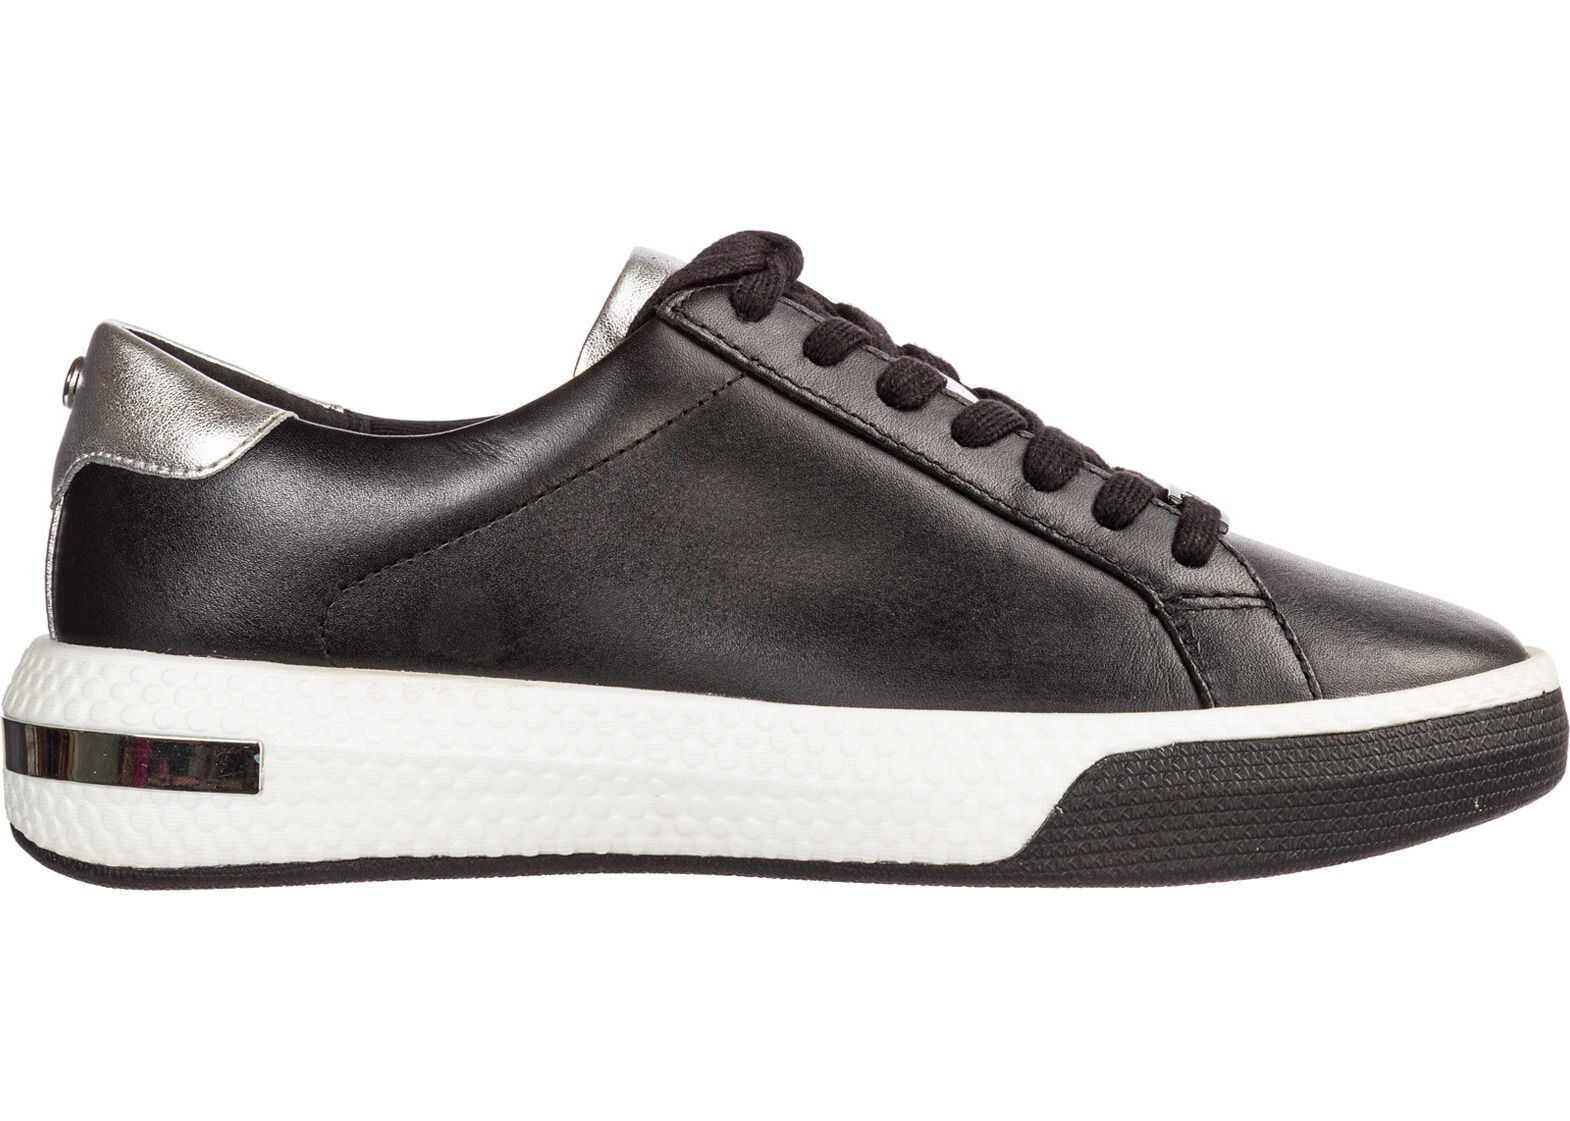 Michael Kors Sneakers Codie Black